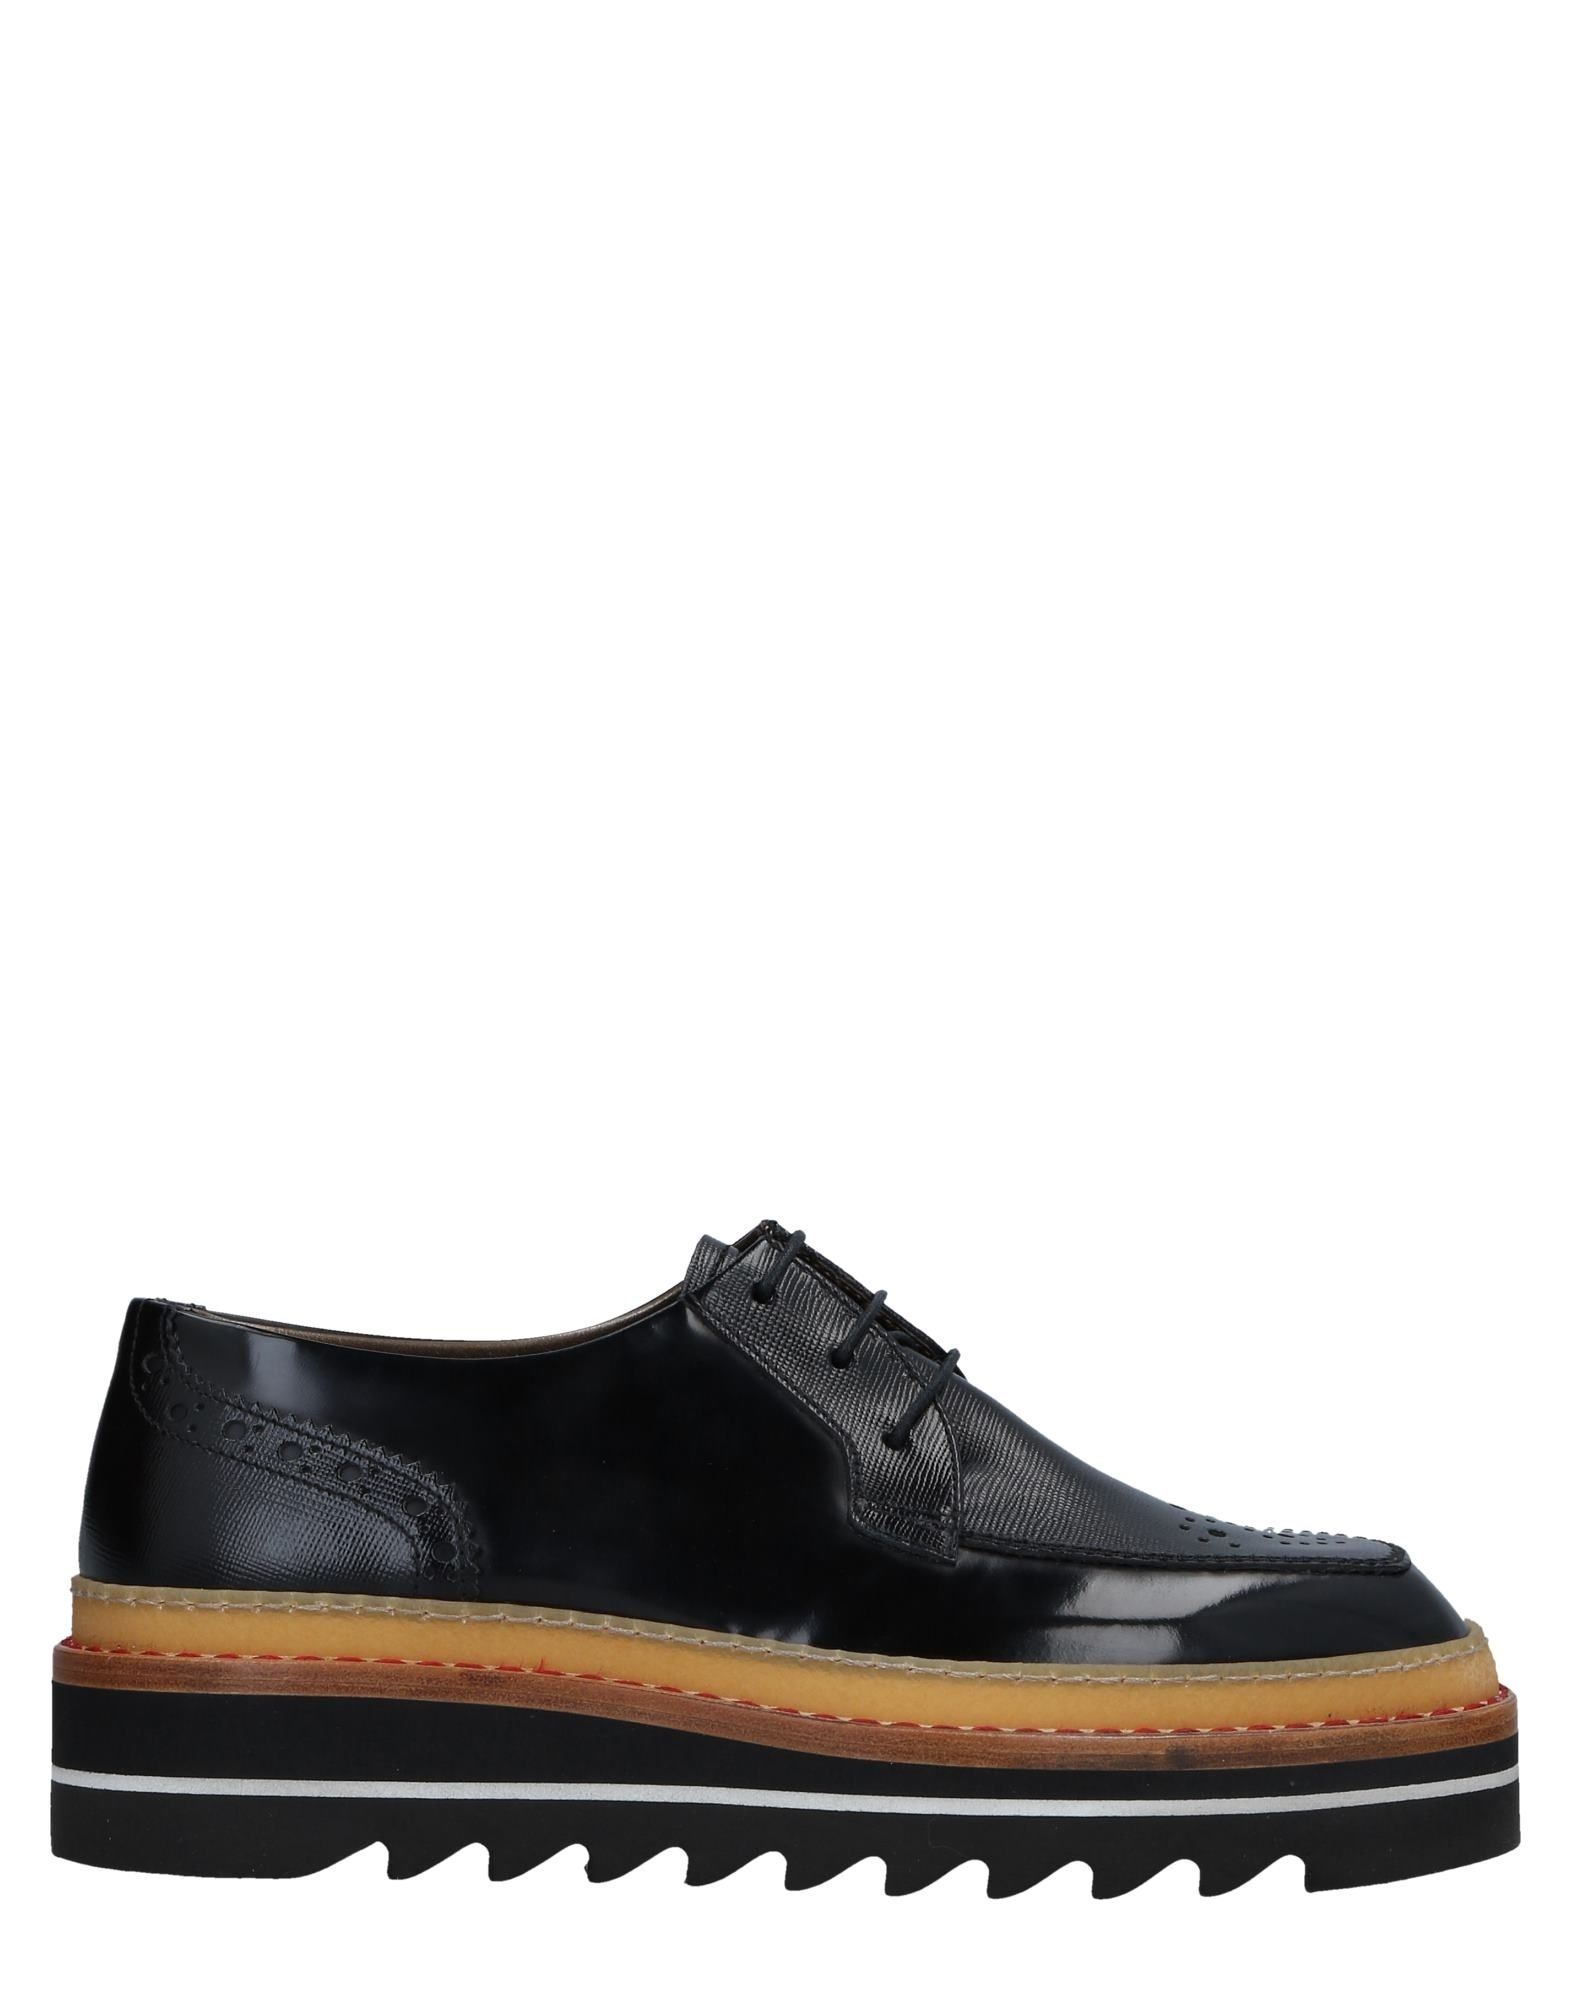 BARRACUDA Laced Shoes in Black